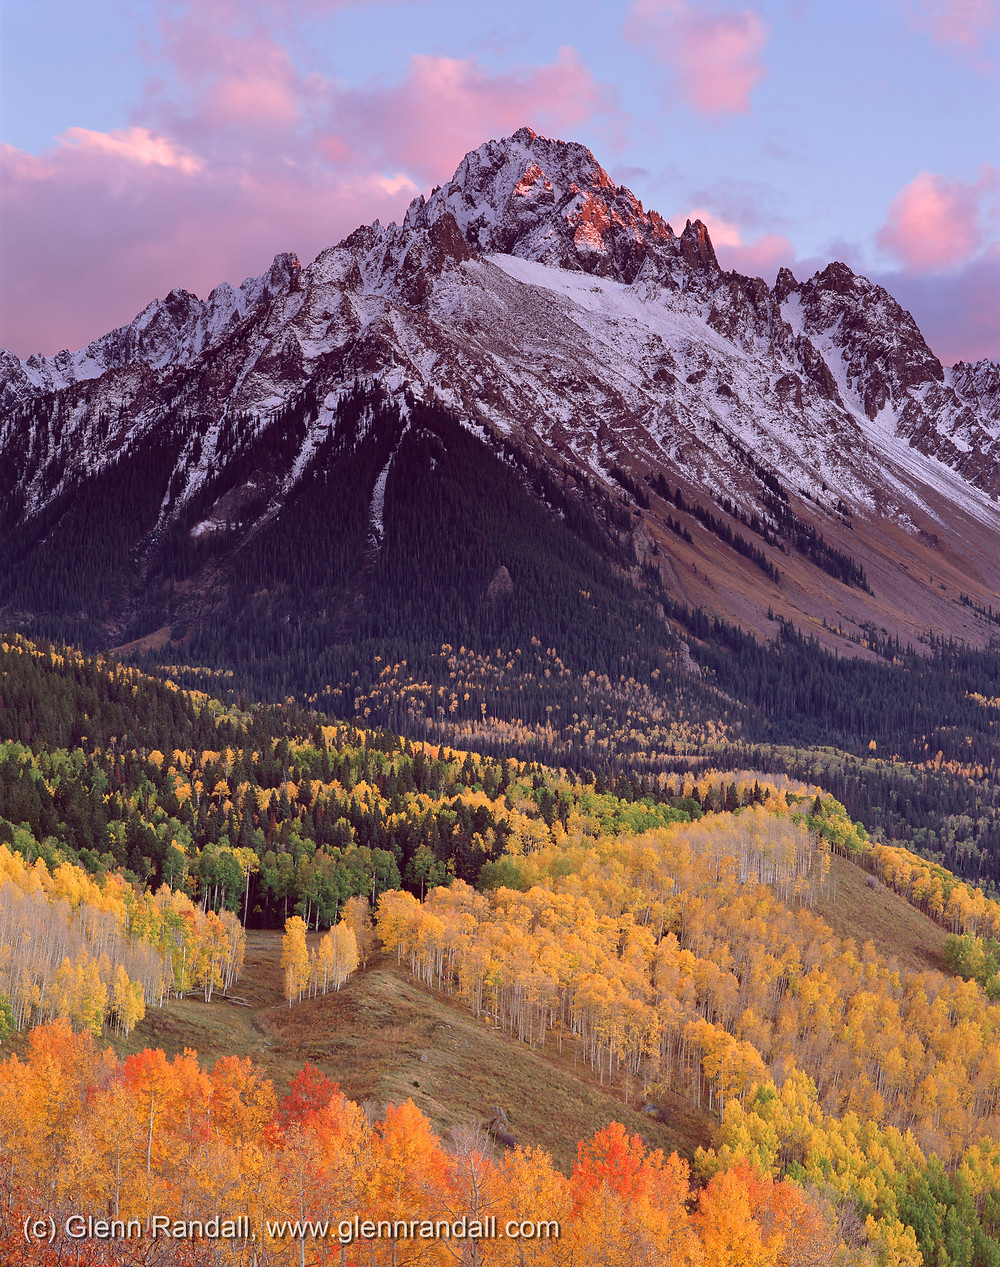 Mt. Sneffels at sunset, Mt. Sneffels Wilderness, Colorado